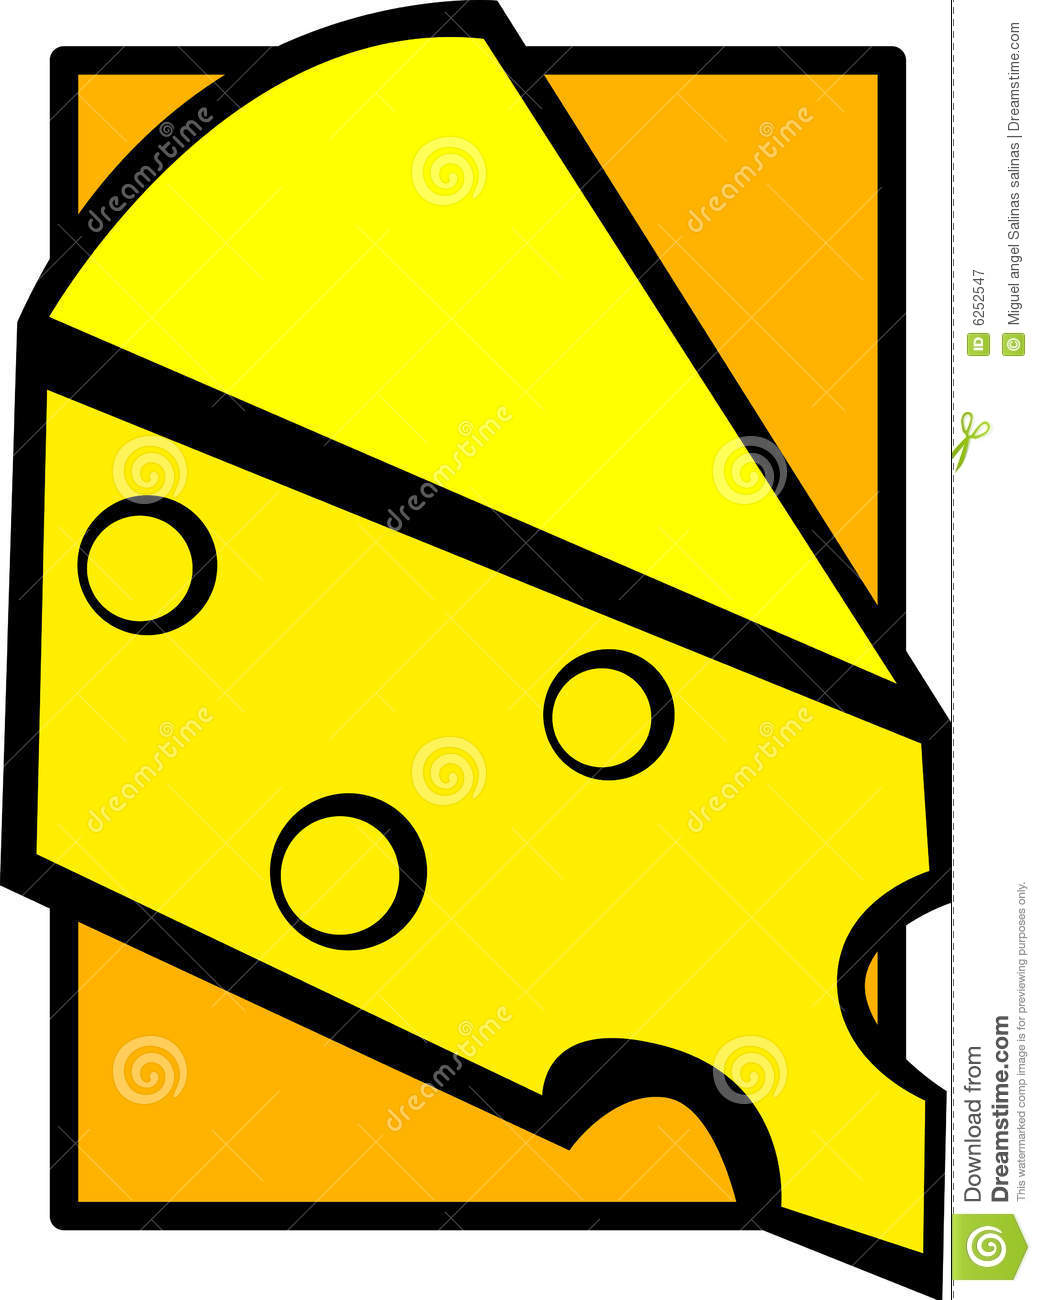 Swiss Or Gruyere Cheese Slice Vector Illustration Royalty Free.